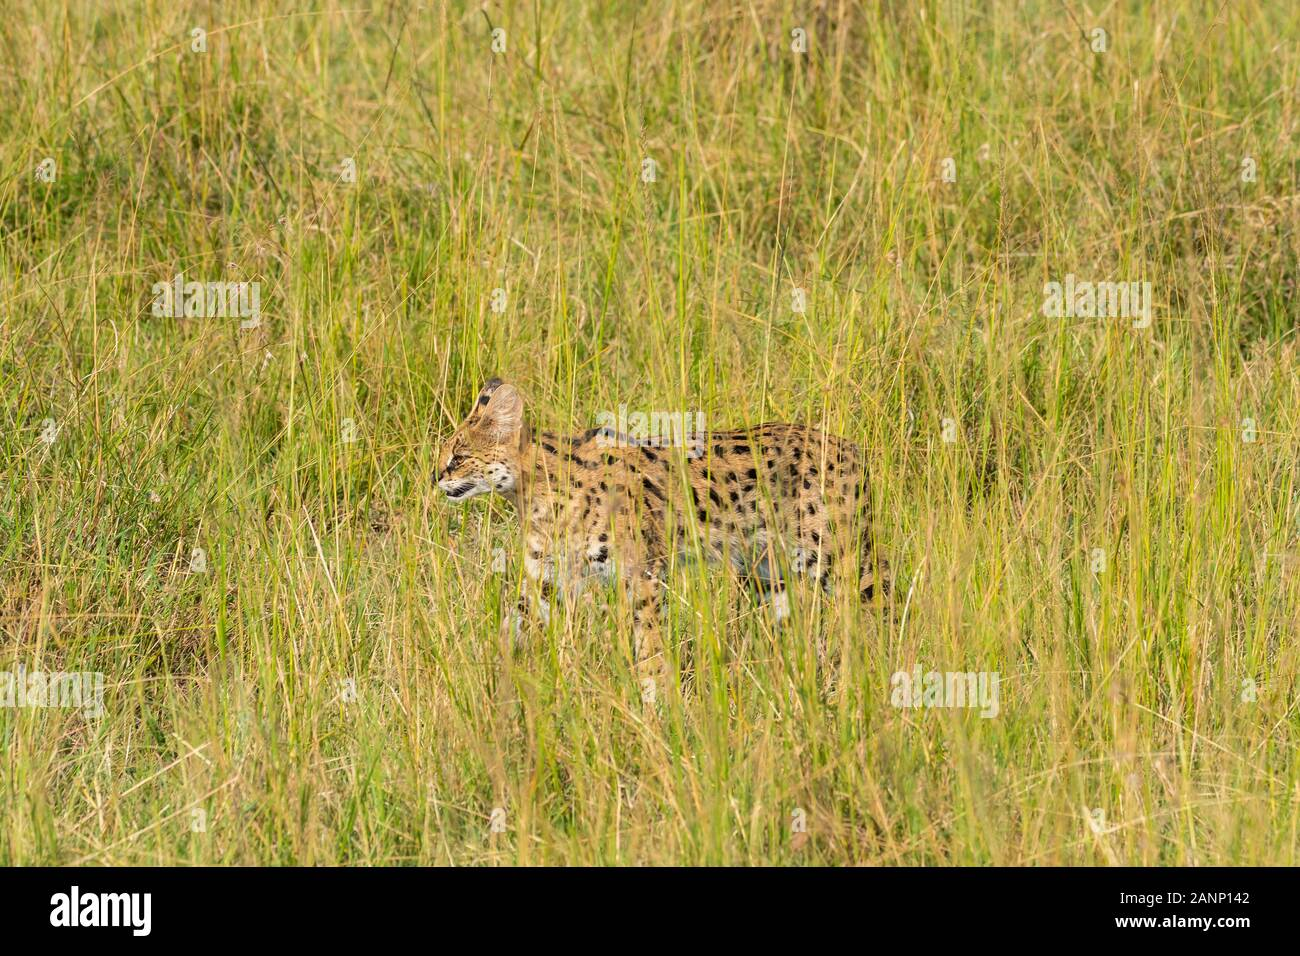 A serval cat walking in the high grasses in the plains of Africa inside Masai Mara National Reserve during a wildlife safari Stock Photo